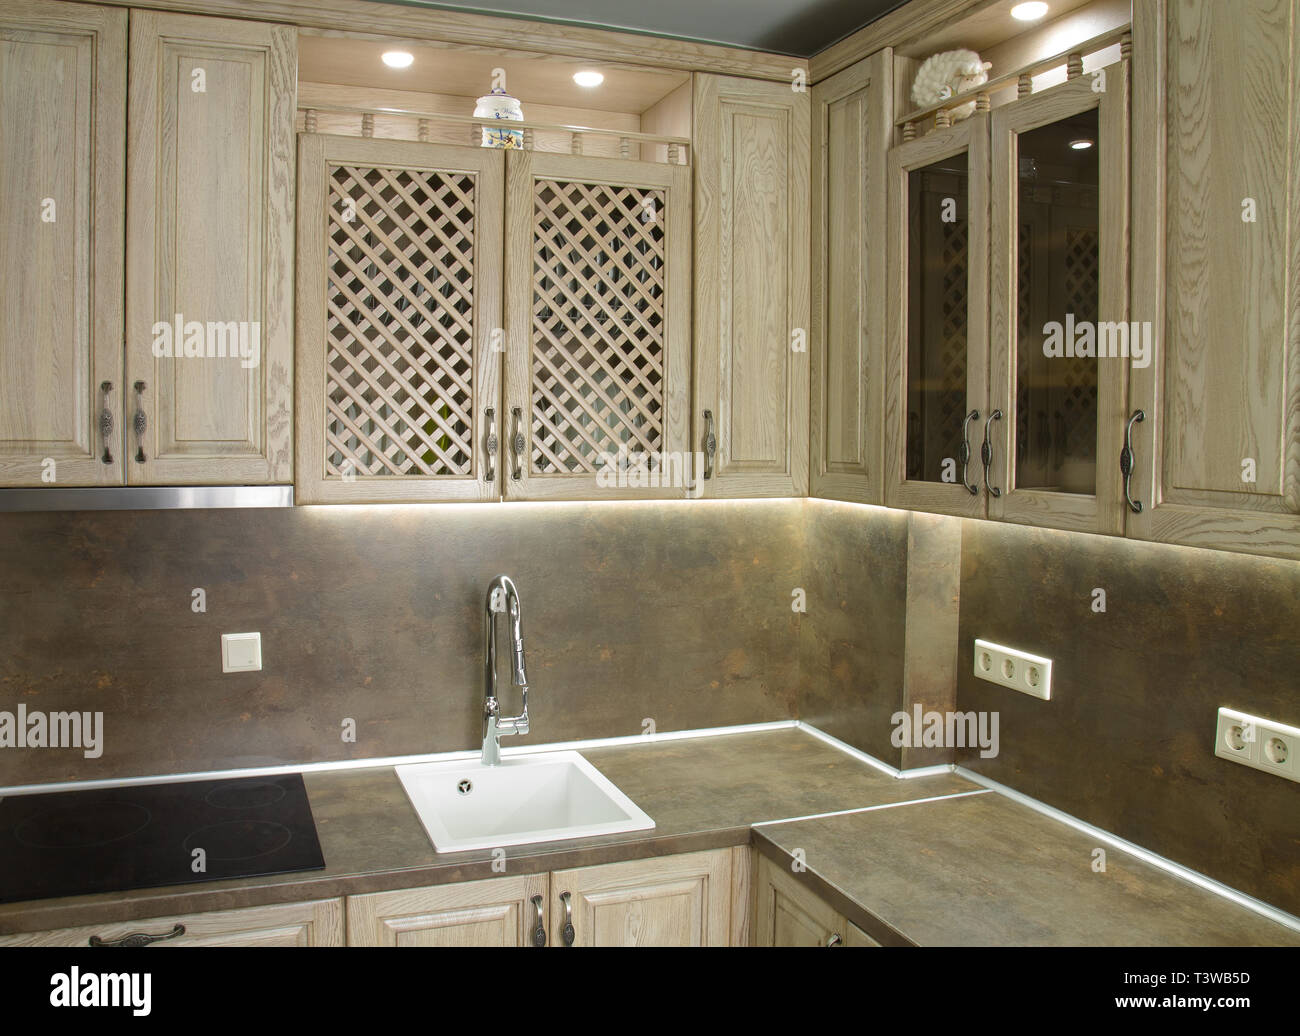 Details De Style Vintage Meubles De Cuisine En Couleur Marron Beige Photo Stock Alamy